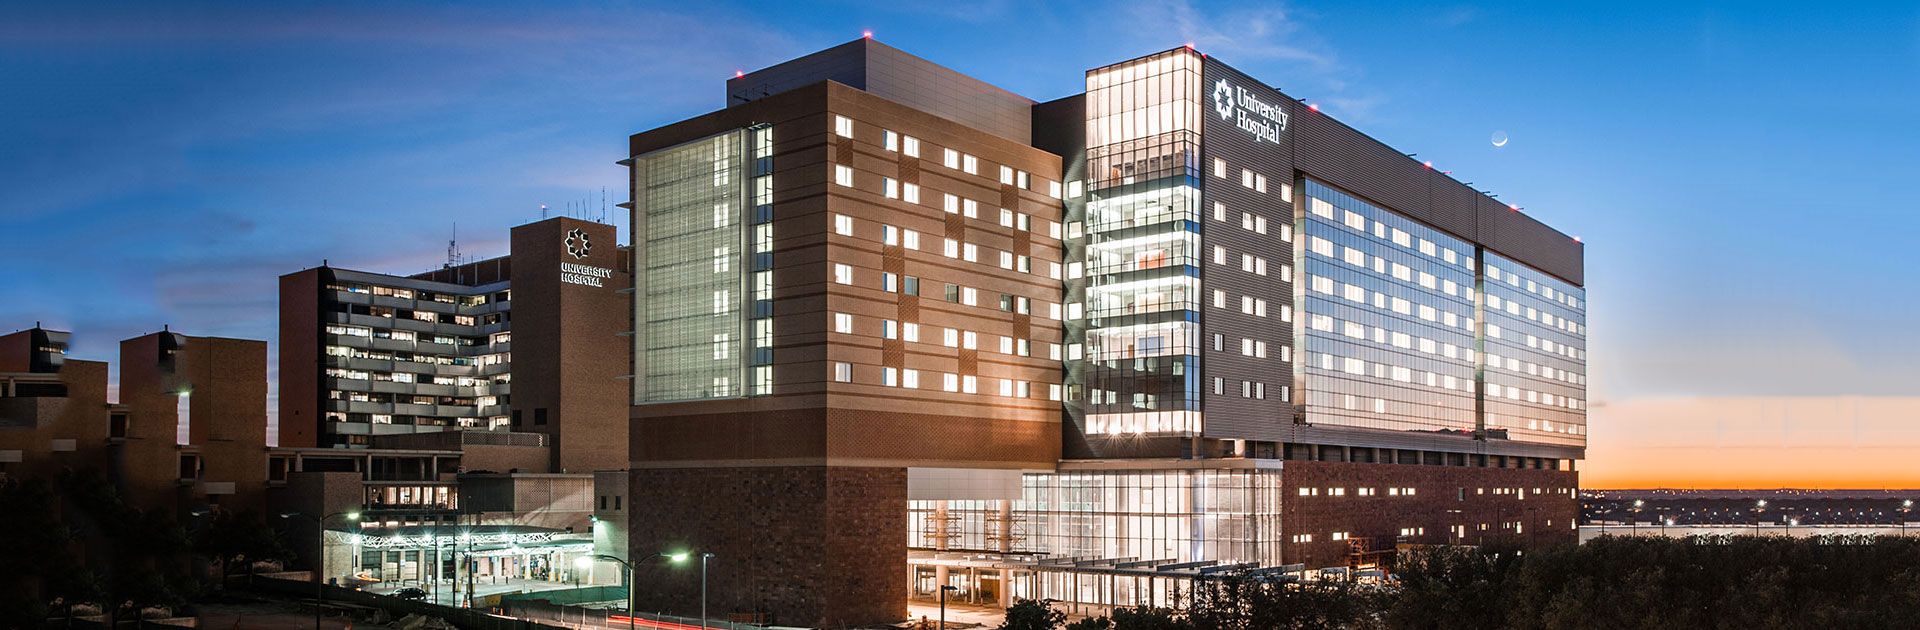 """University Health System's one million square foot Sky Tower project was named """"Best Project: Healthcare"""" by Engineering News-Record for 2014 Best Projects Competition"""